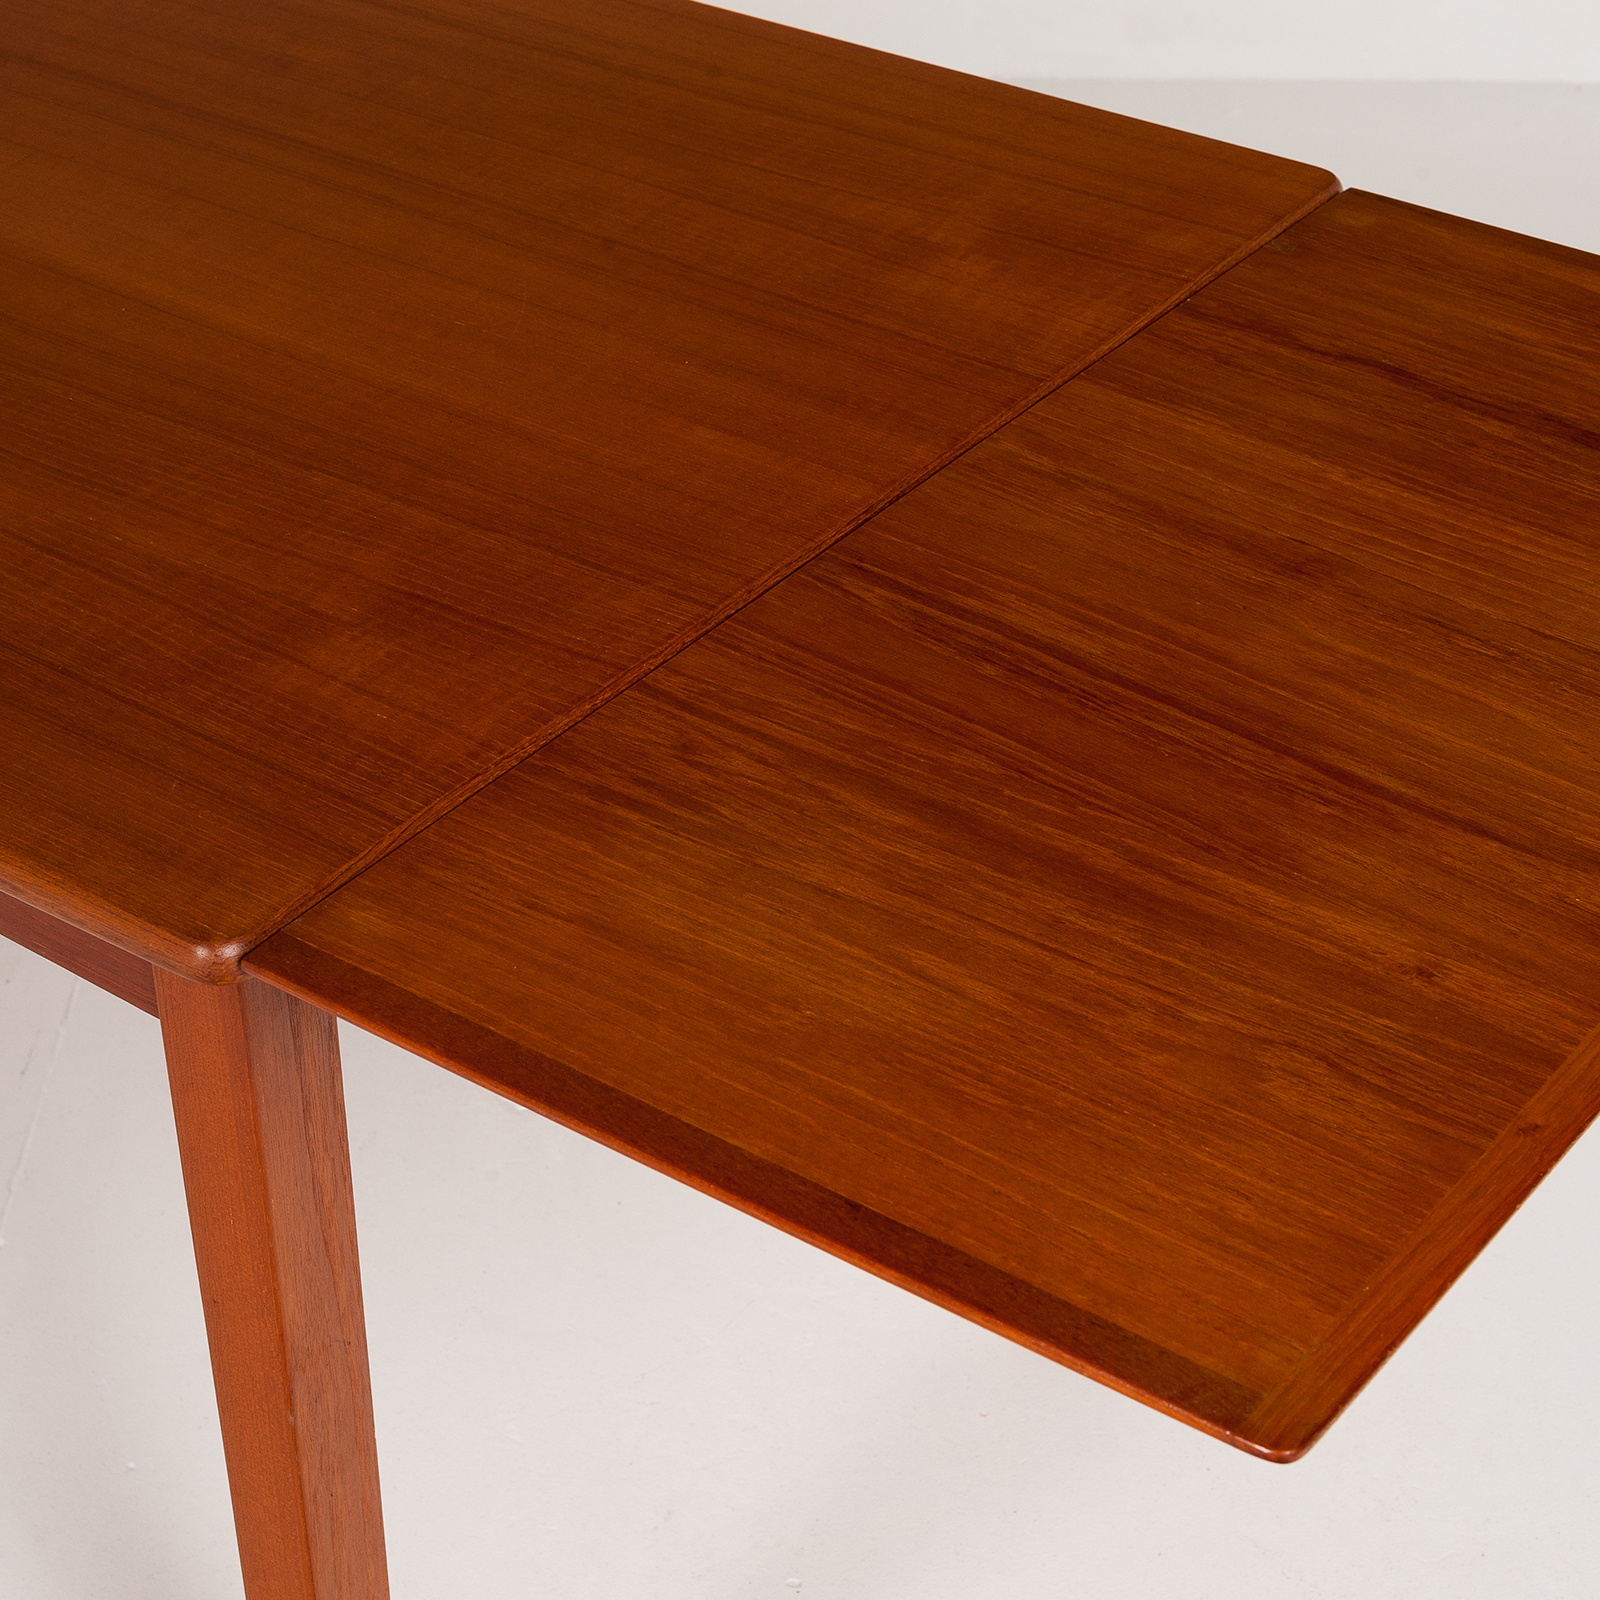 Rectangular Extension Dining Table In Teak With Square Legs, 1960s, Denmark6012